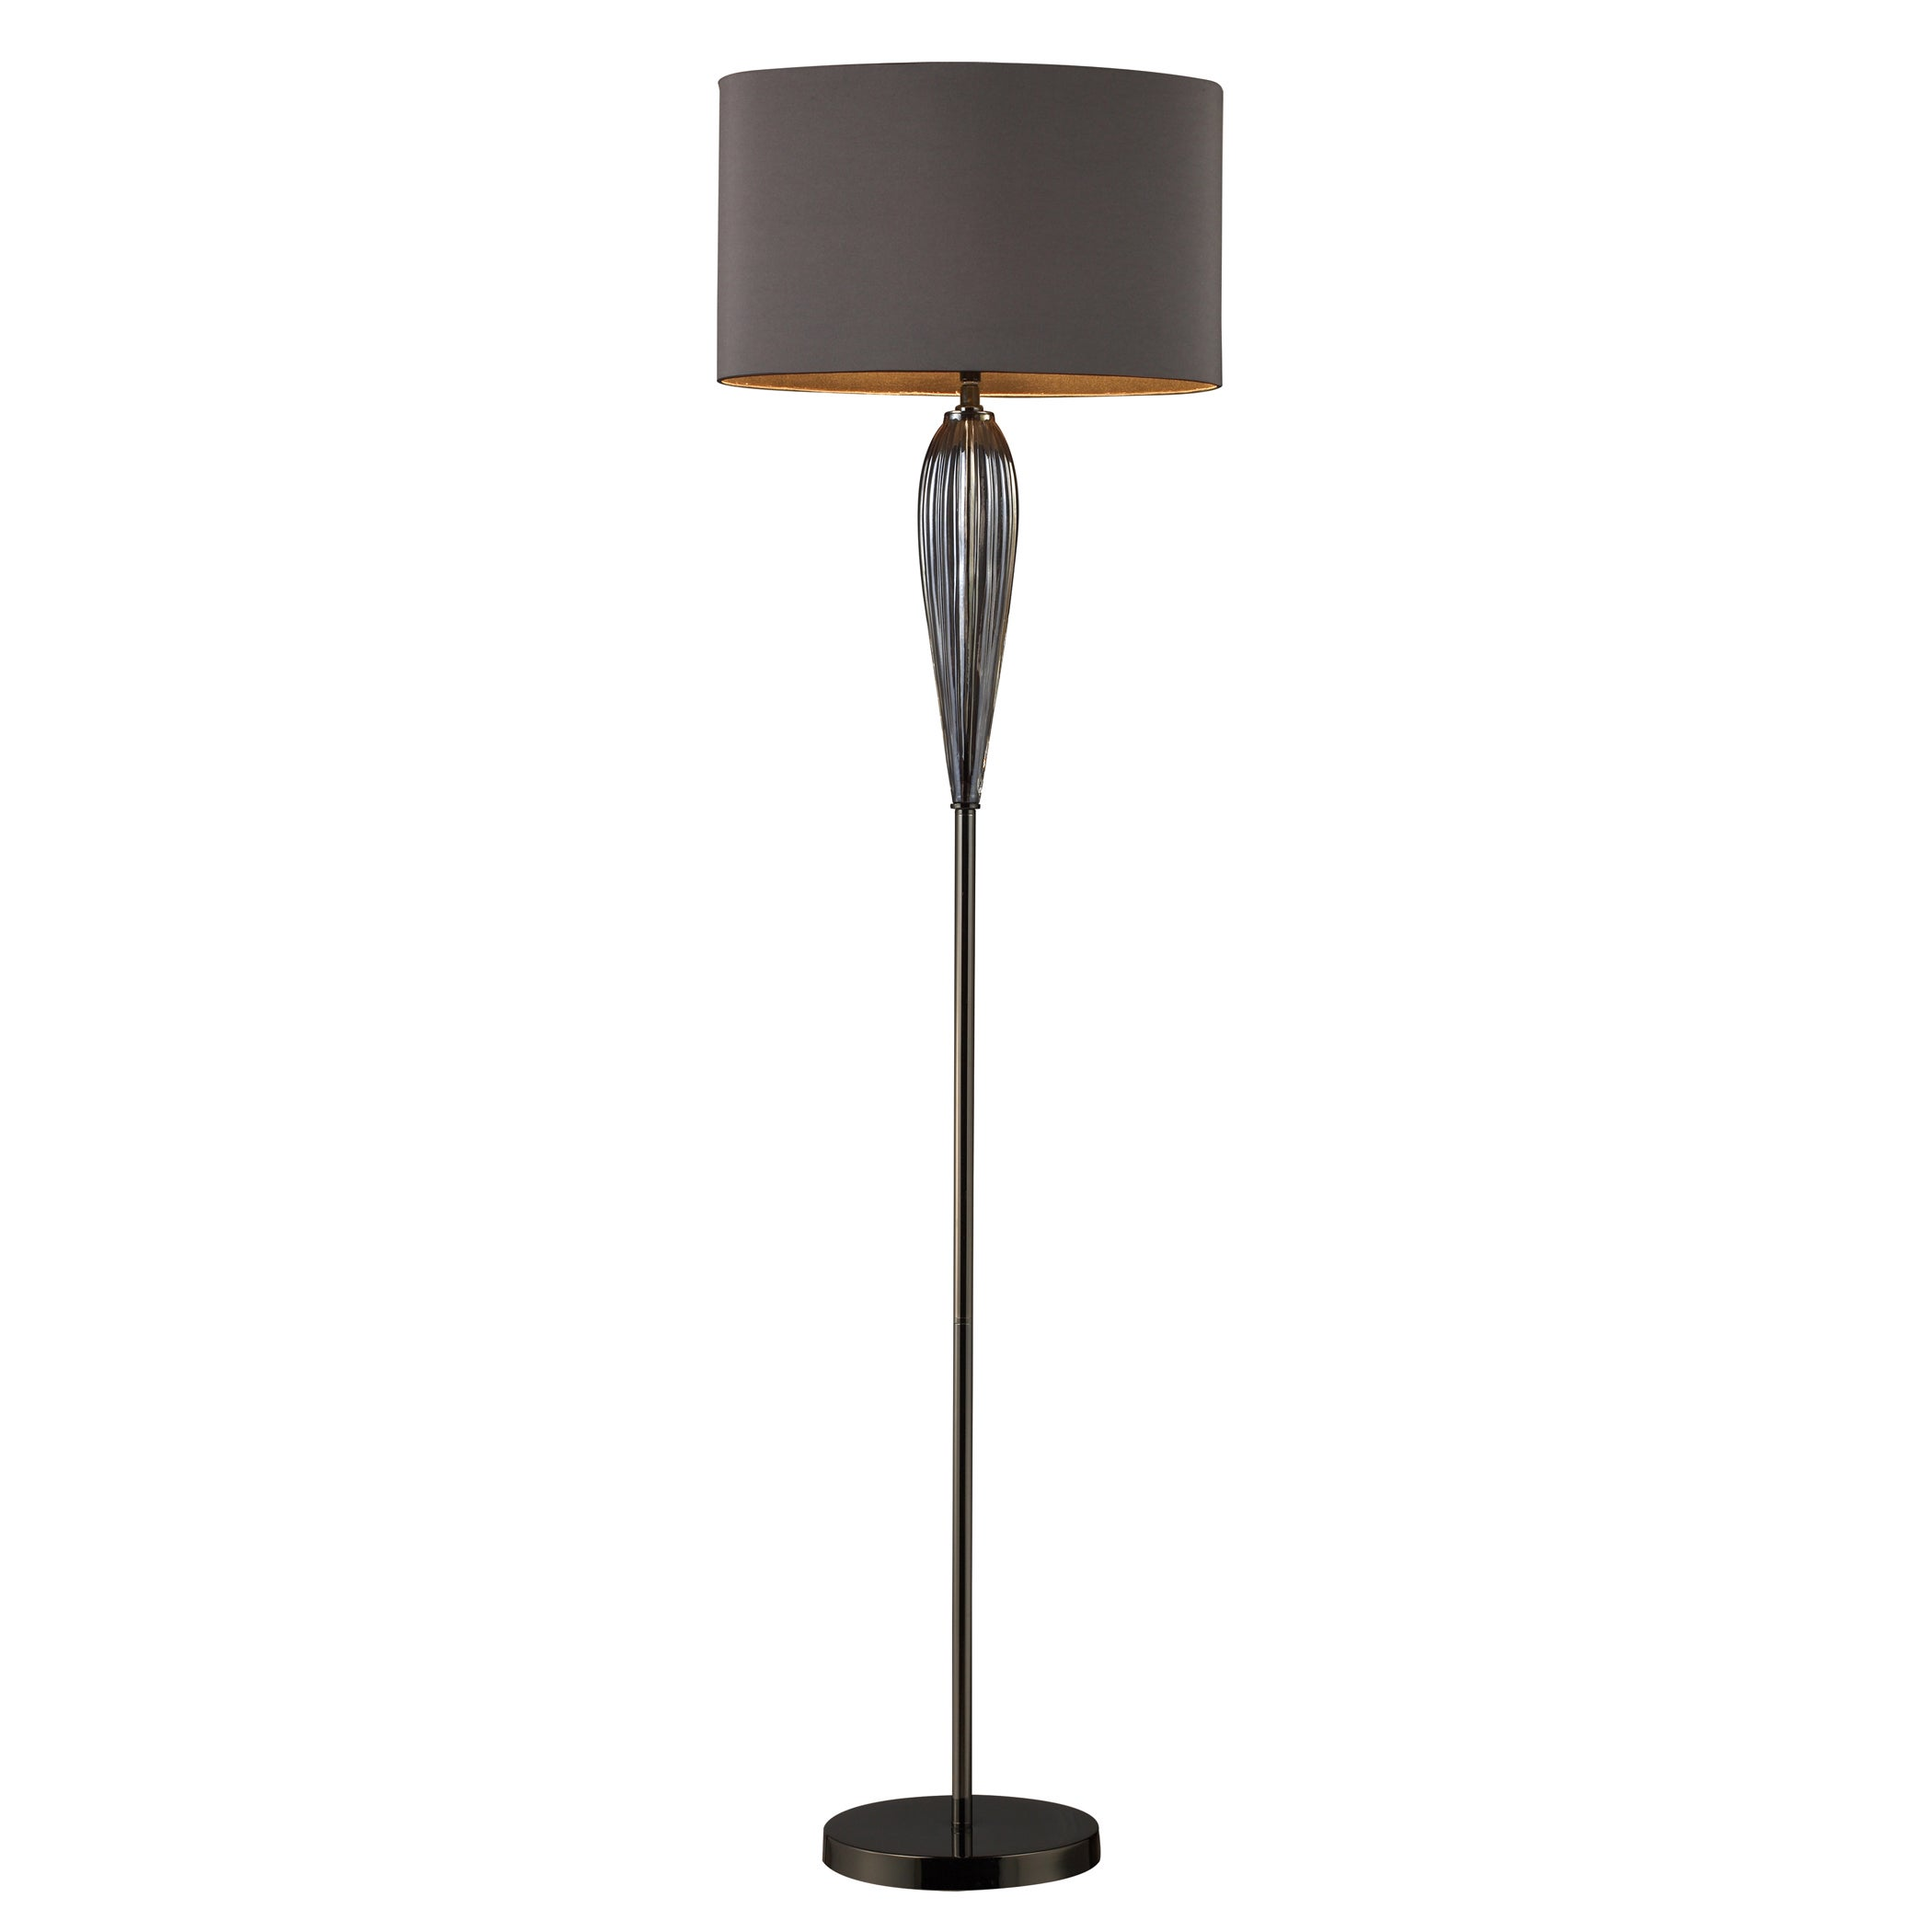 overstock shopping great deals on dimond lighting floor lamps. Black Bedroom Furniture Sets. Home Design Ideas